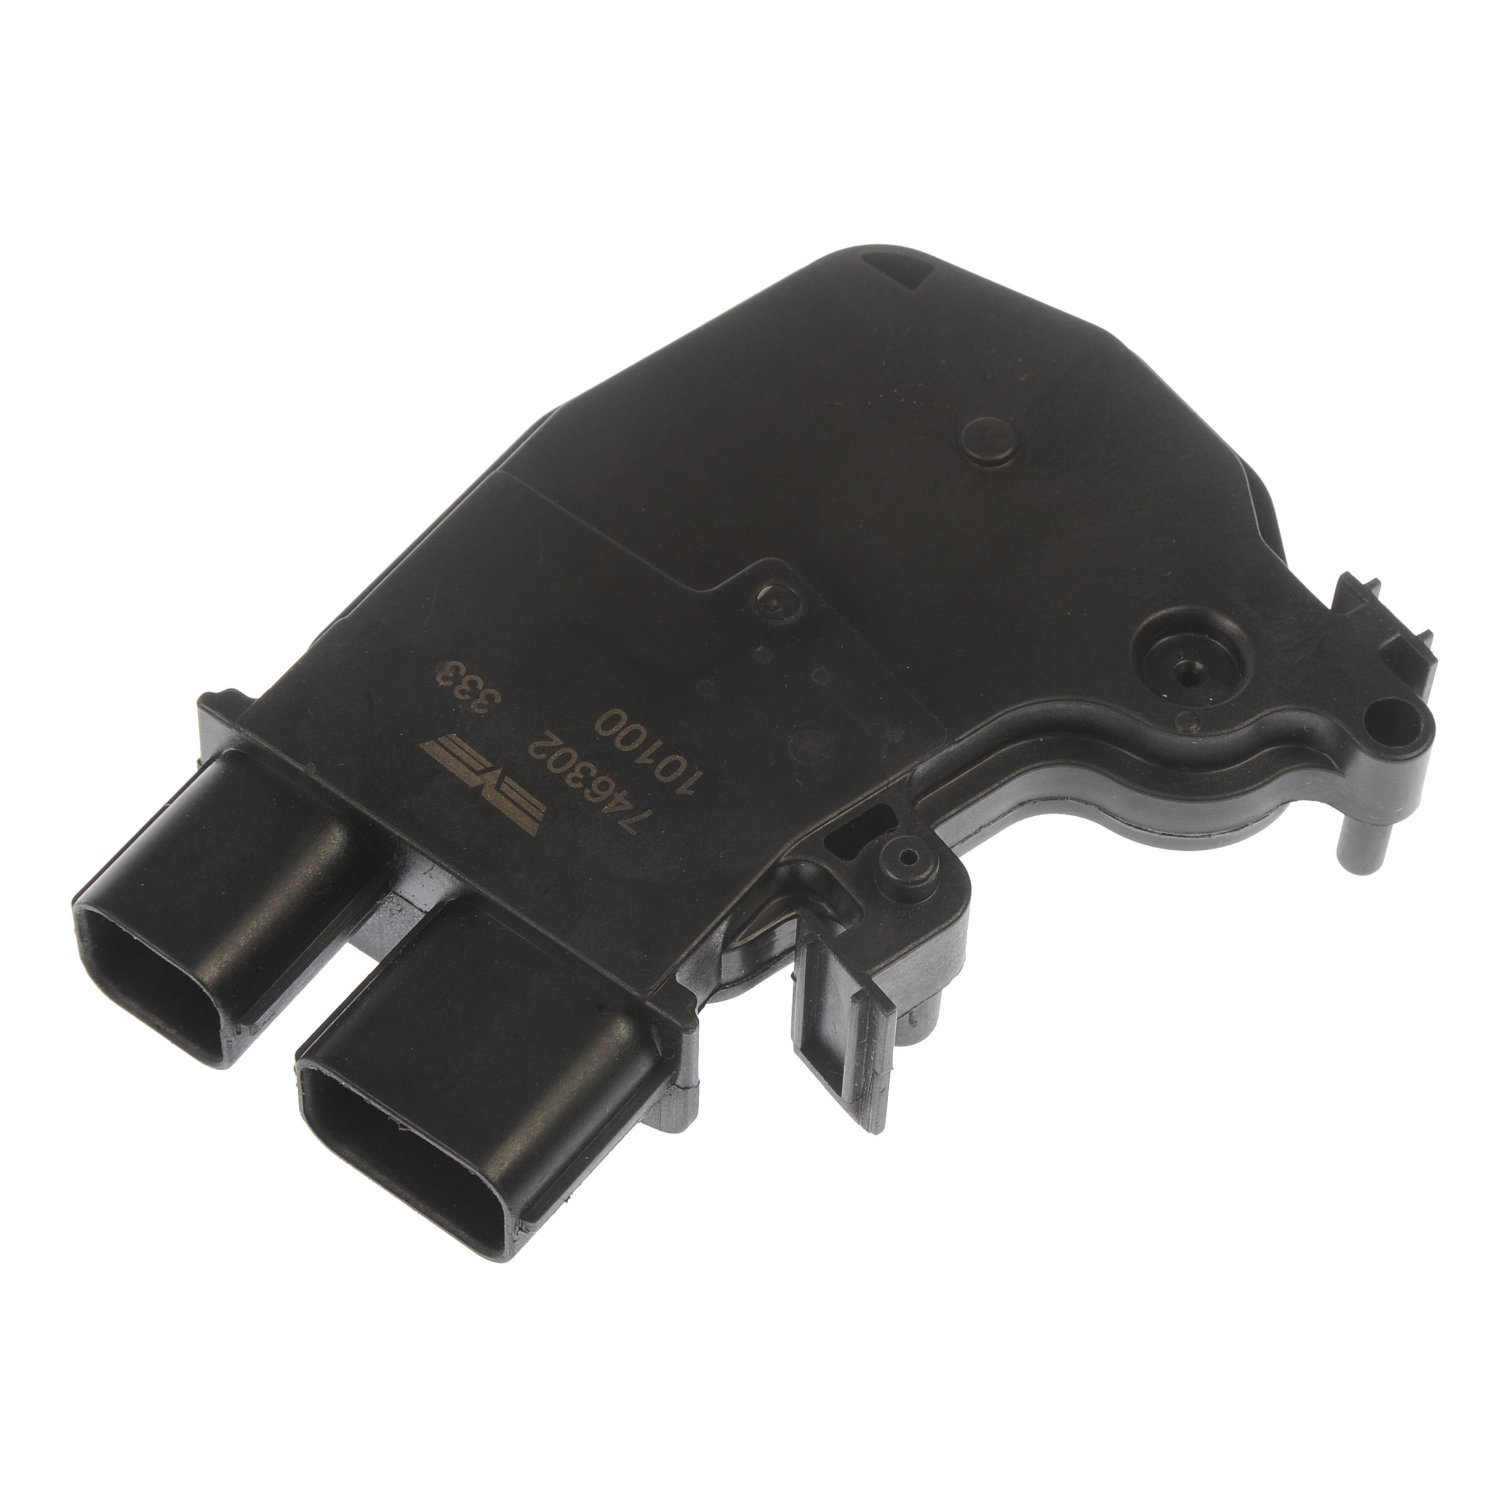 Lock Actuator Replacement Gen 2 CR-V - Page 8 - HondaSUV com Forums